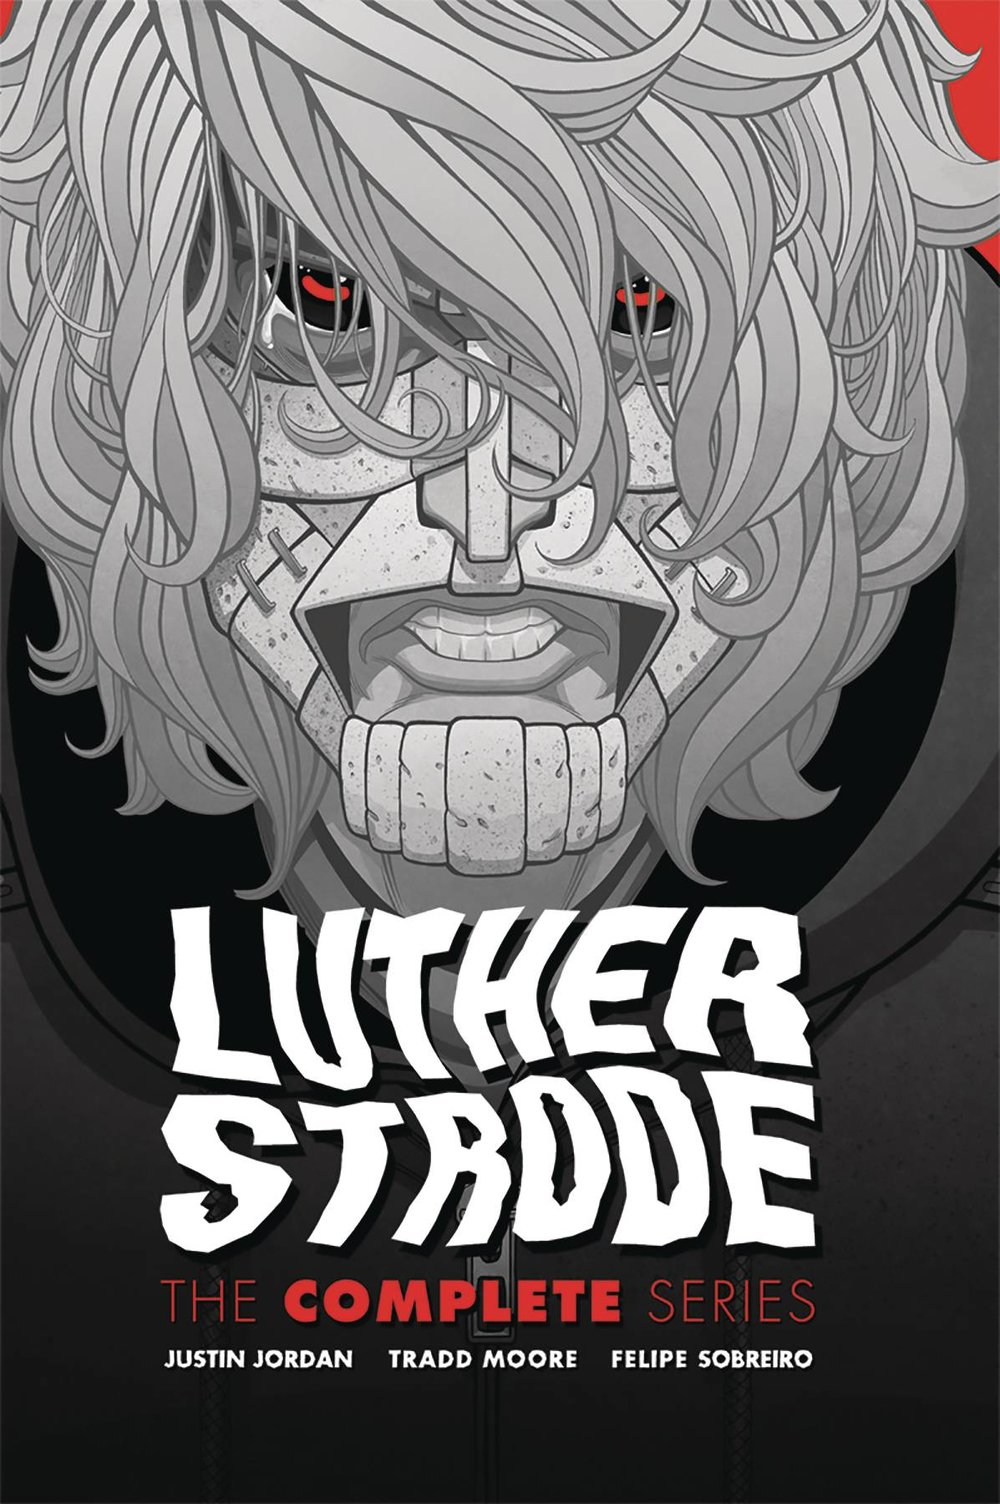 LUTHER STRODE COMP SERIES HC.jpg